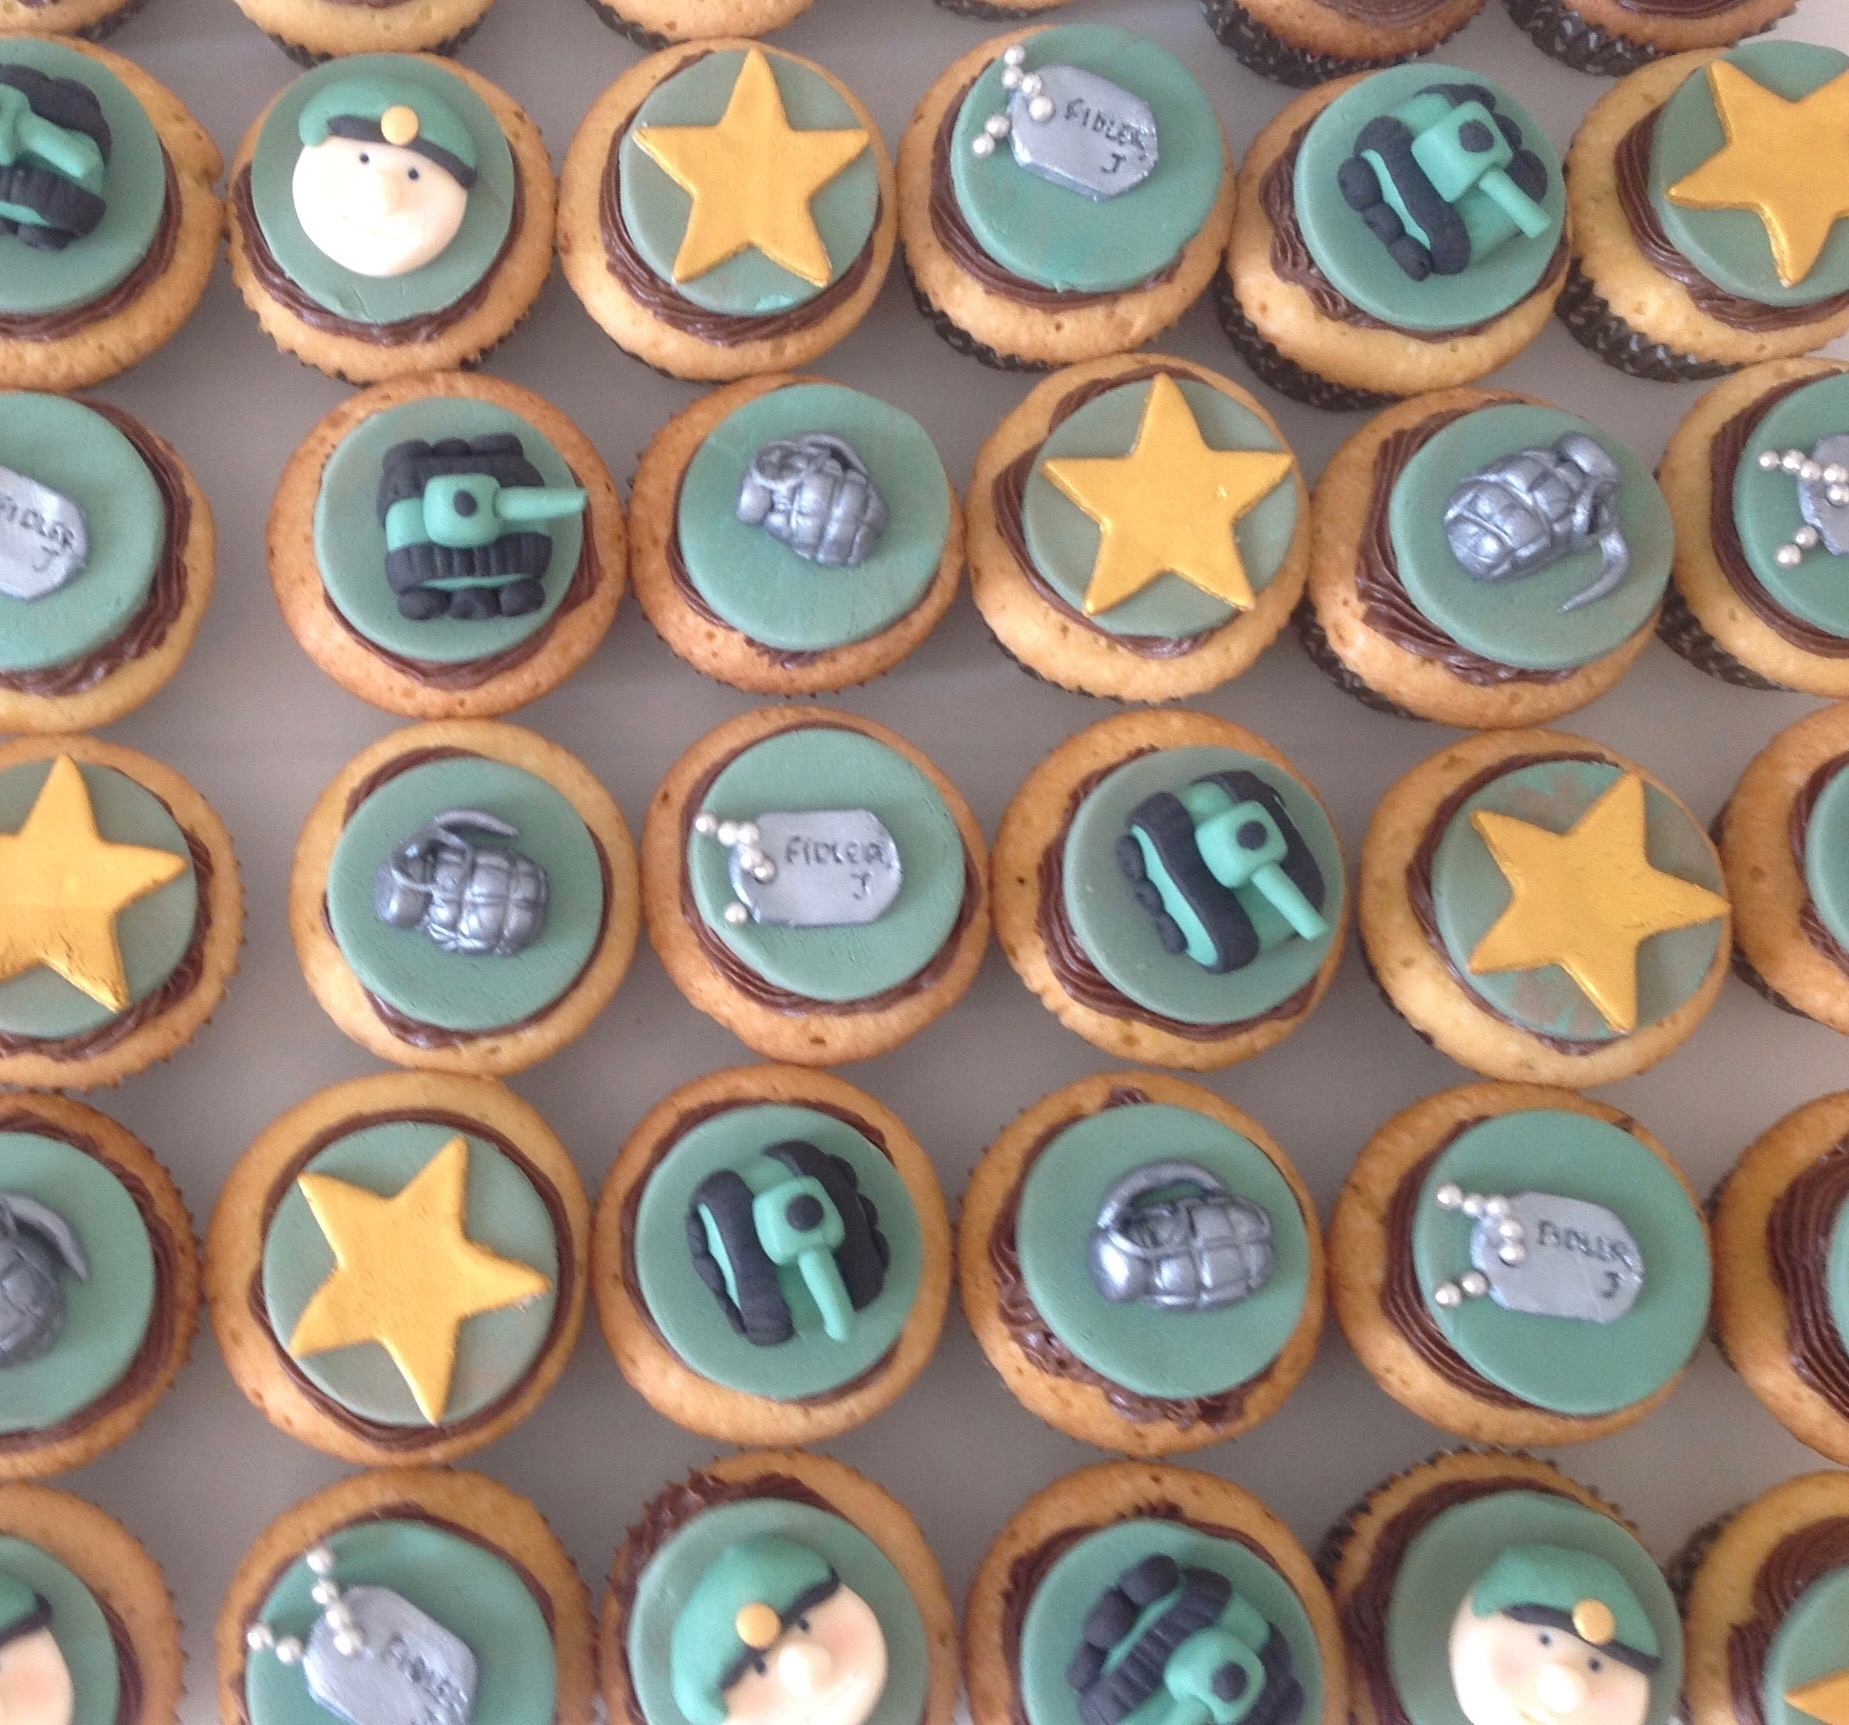 Army cupcakes with tanks, dog tags, stars, grandes and faces